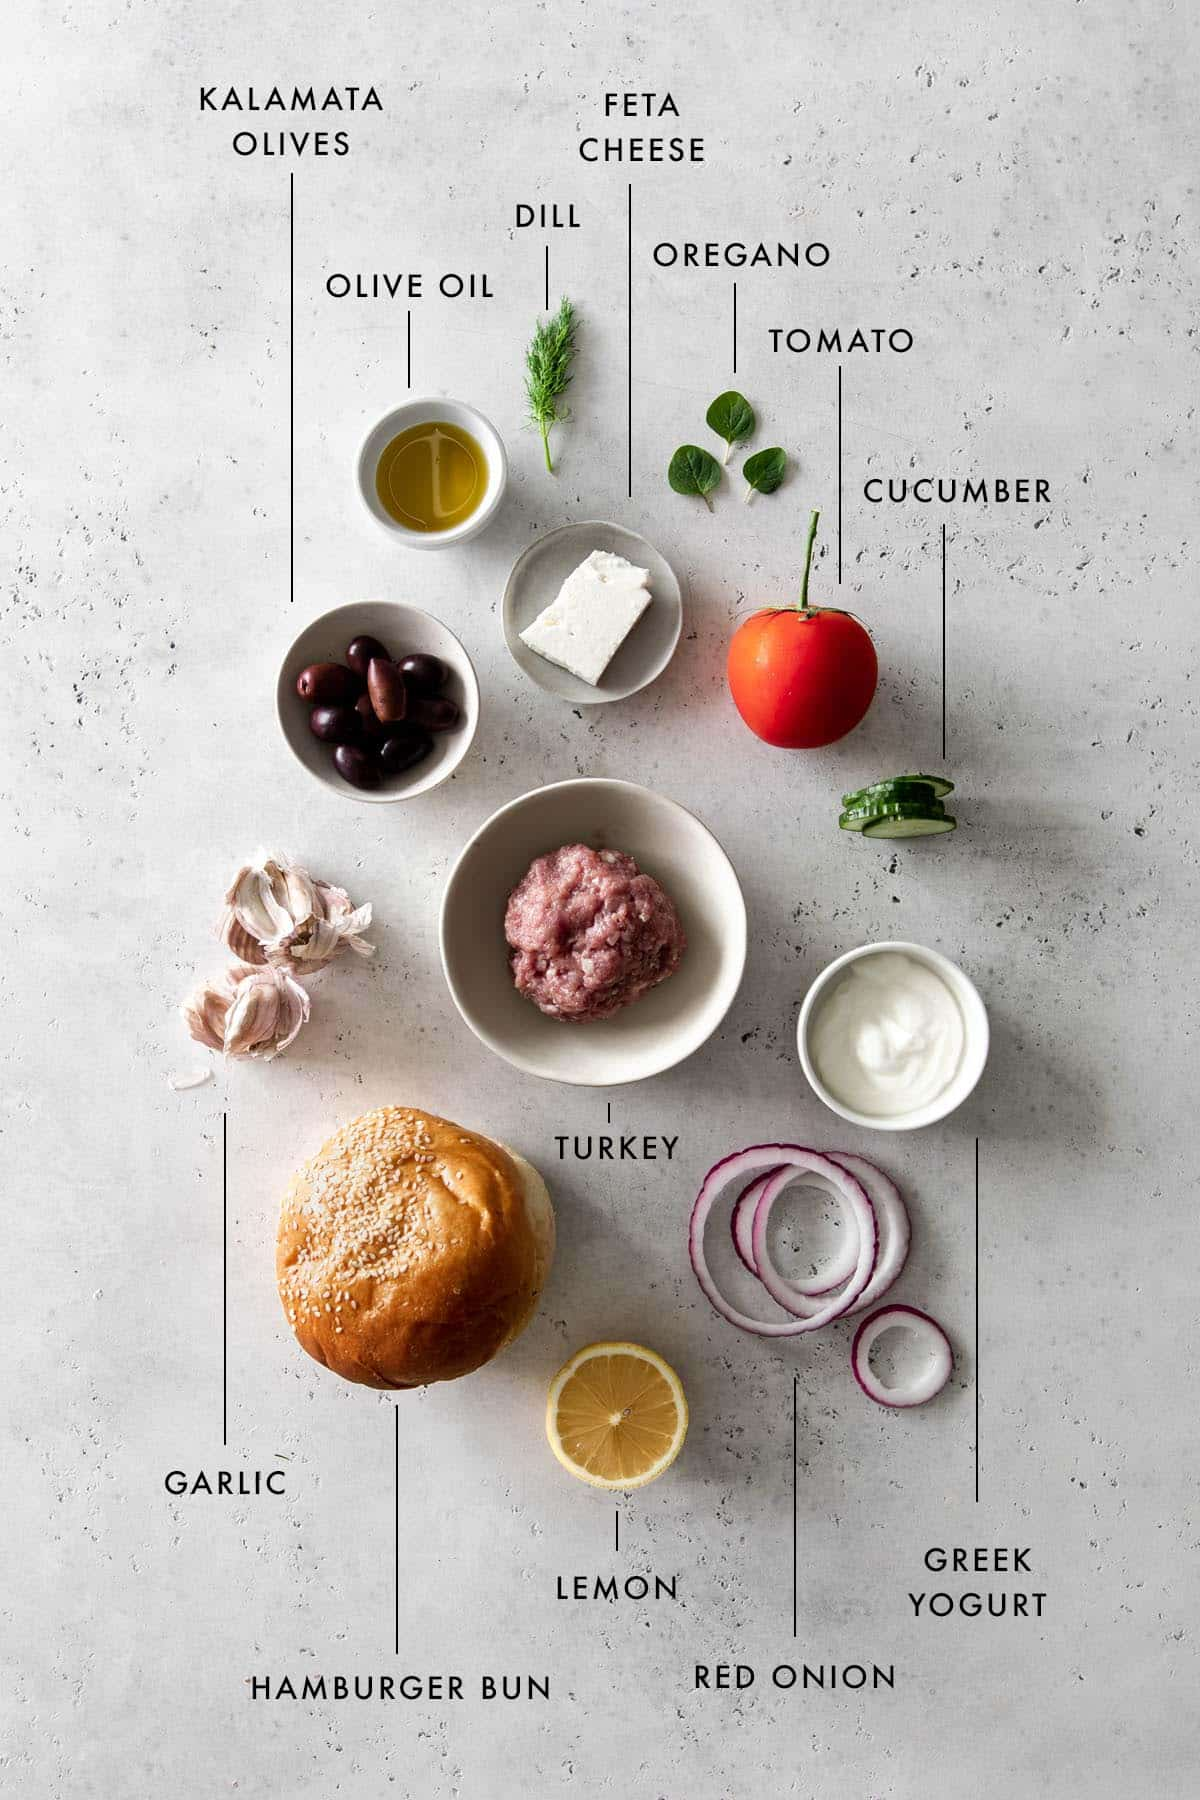 Flat lay style image of ingredients to make a greek burger